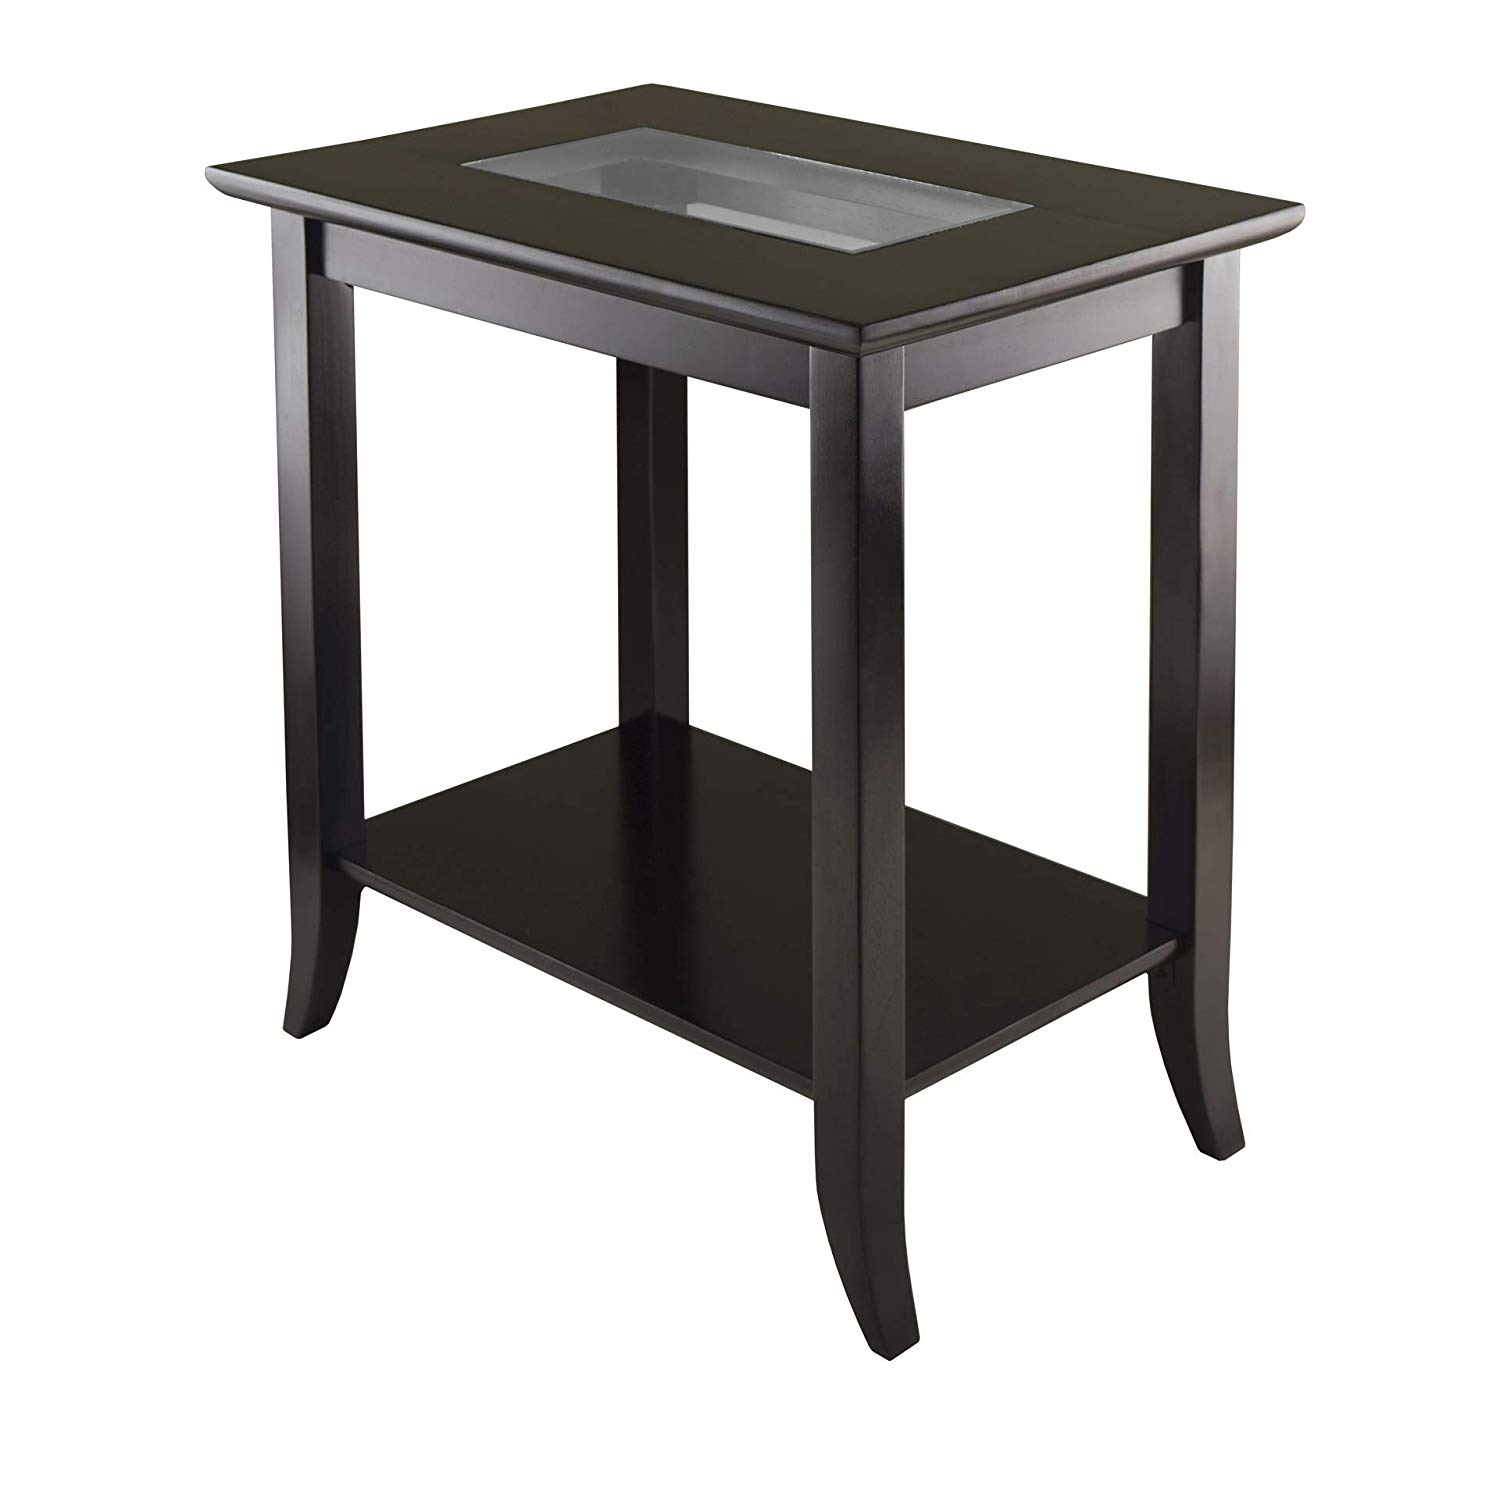 winsome genoa occasional table dark espresso end kitchen dining house fraser bedside lamps mattress box kmart retro style tables log side ethan allen french country legacy